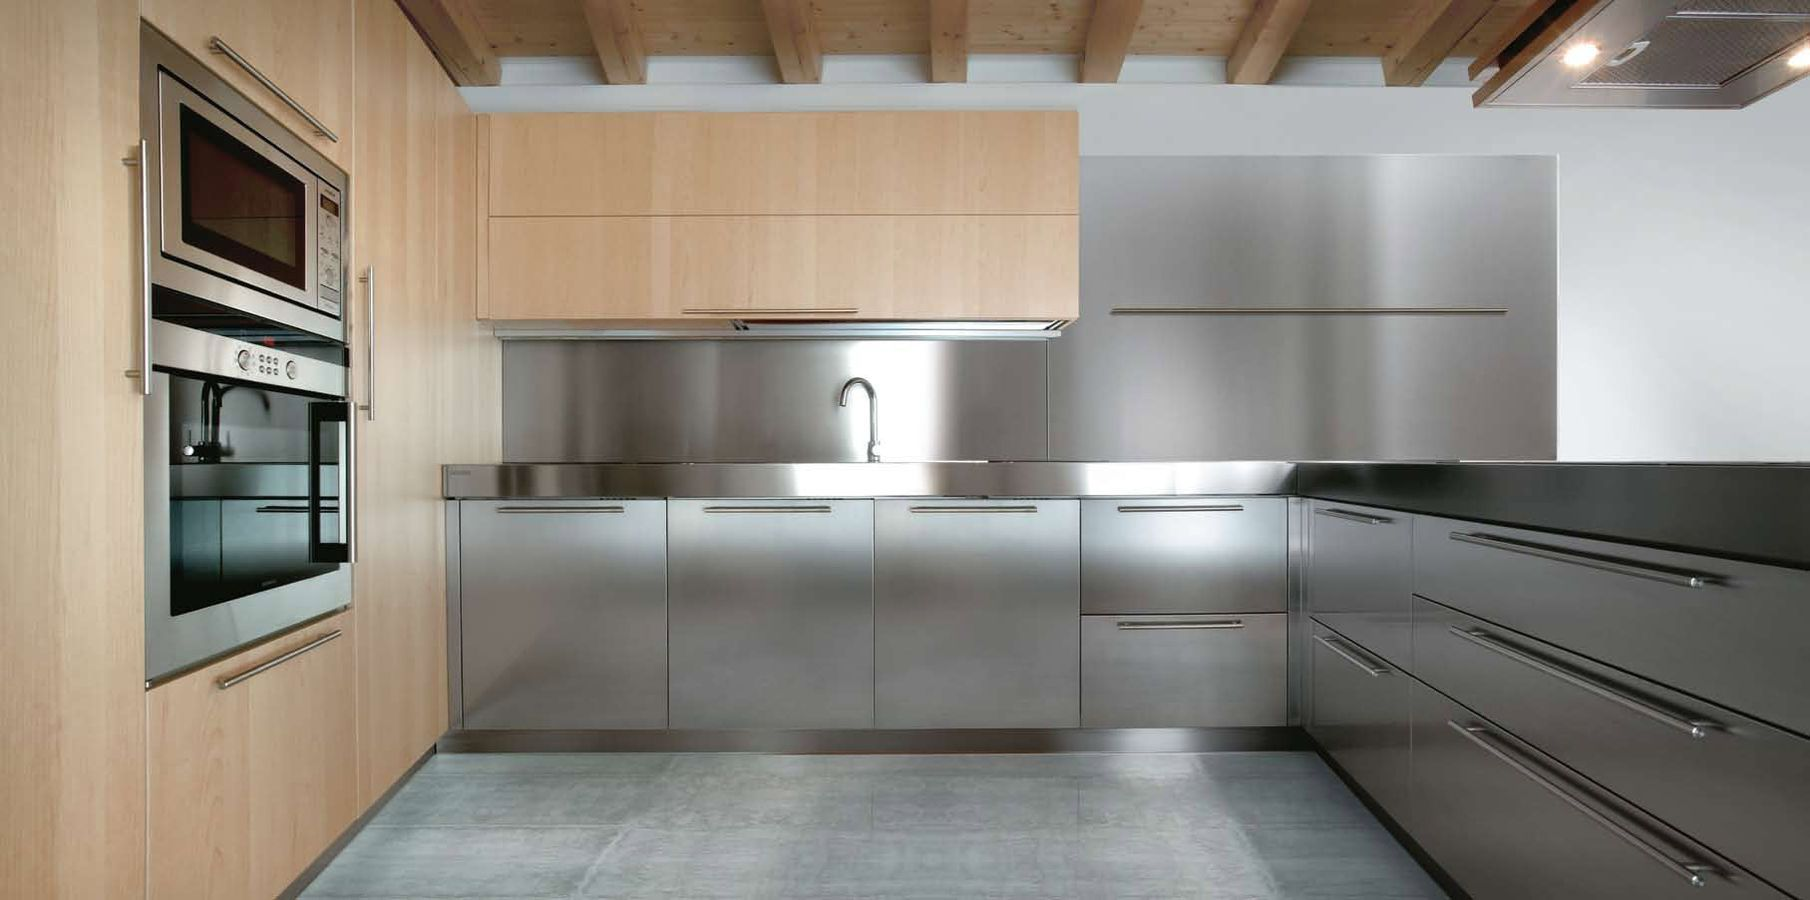 stainless steel kitchen cabinets ikea pictures pin pinterest ...